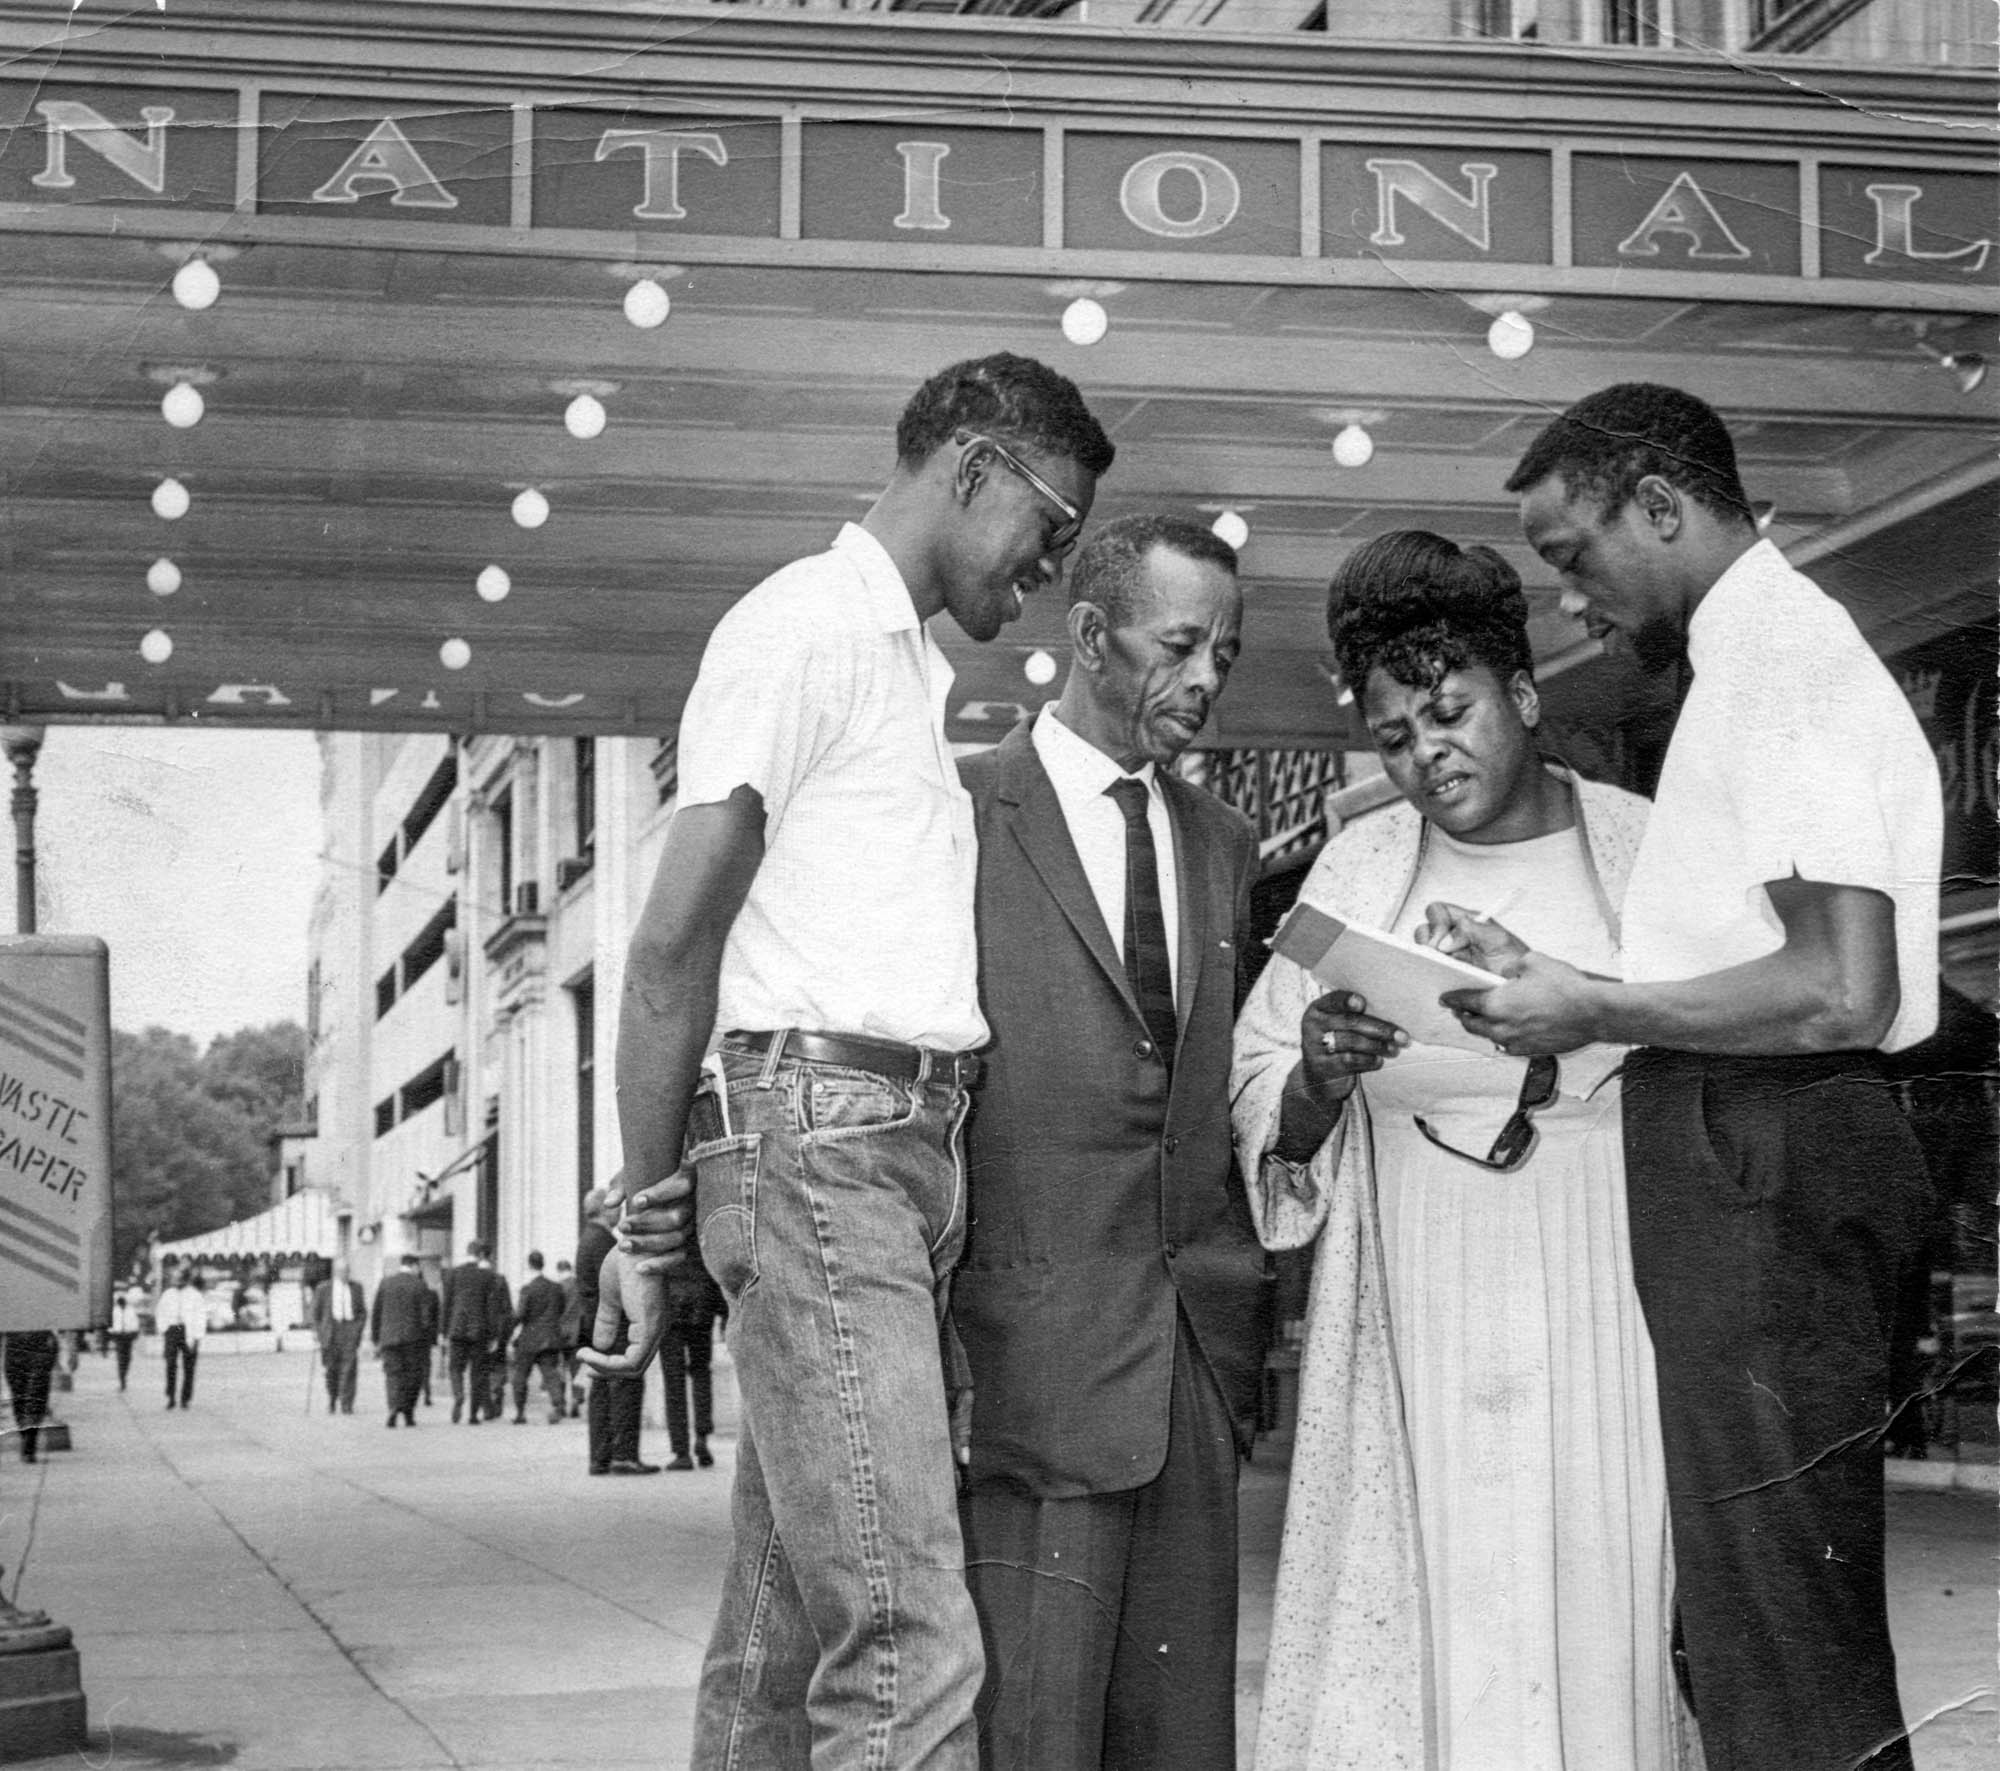 Fannie Lou Hamer standing with three men, June 16, 1964